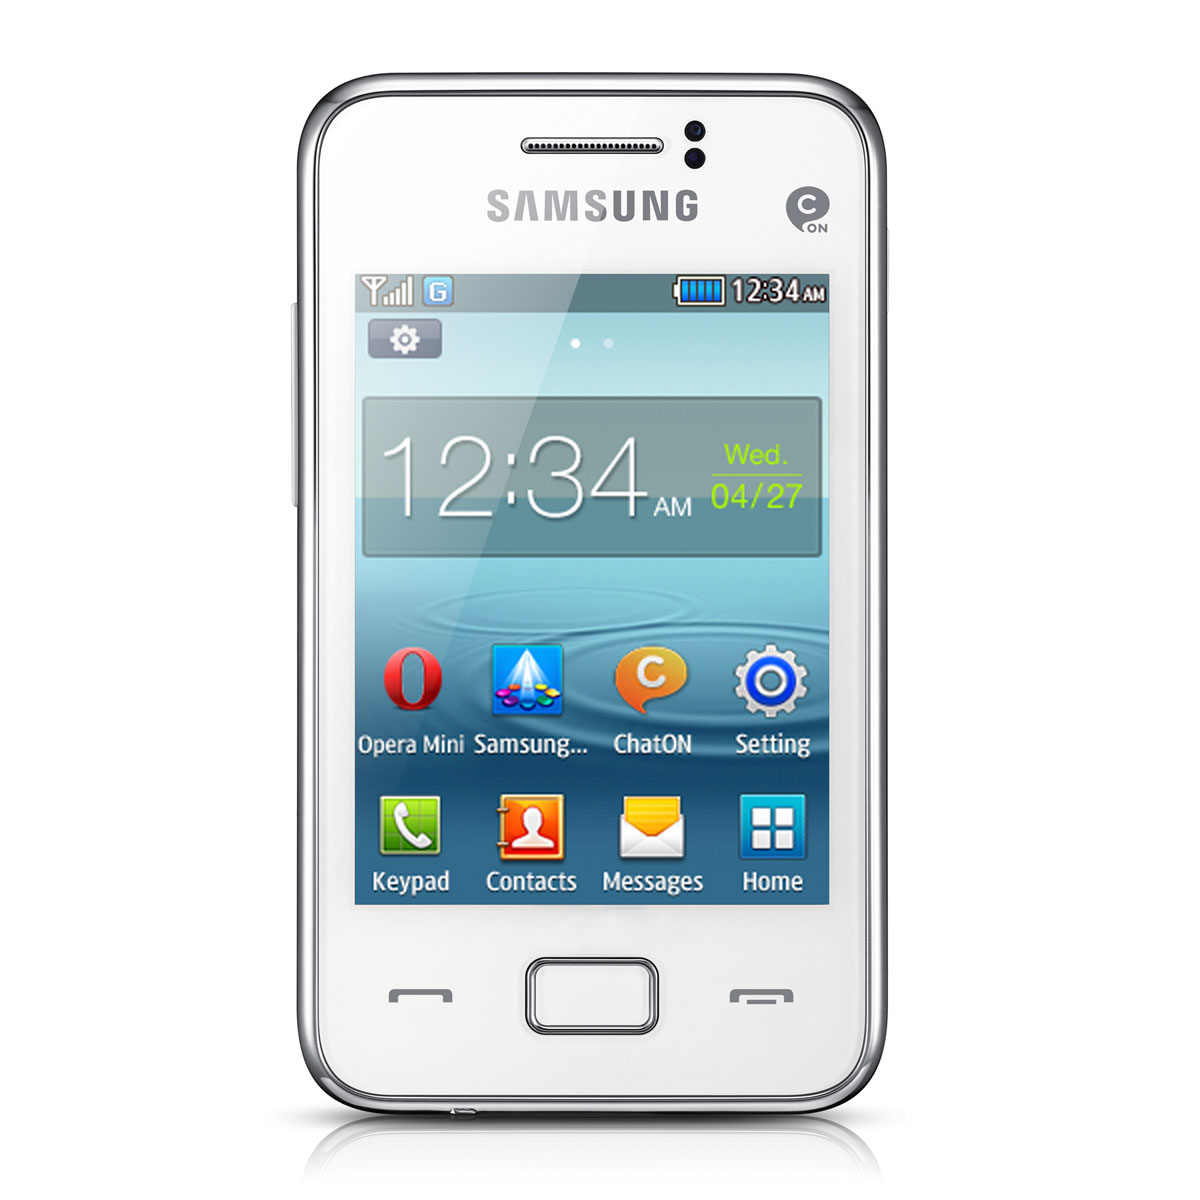 samsung rex 80 gt s5220r blanc mobile smartphone samsung sur ldlc. Black Bedroom Furniture Sets. Home Design Ideas